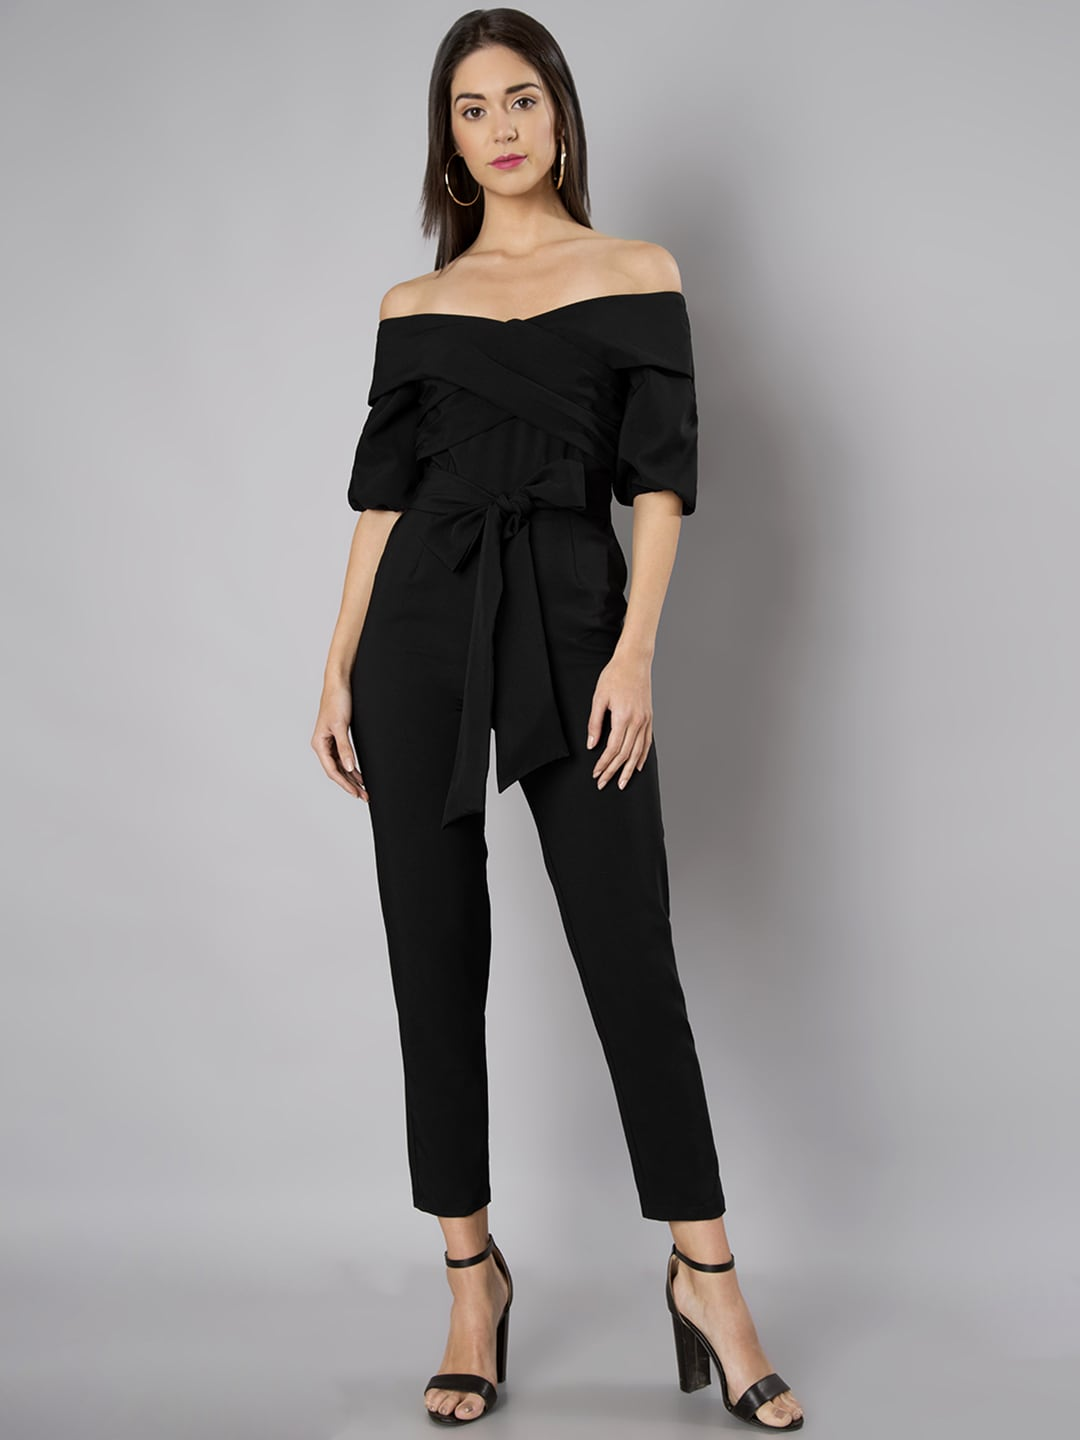 73fd145a6527 Faballey Black Jumpsuit - Buy Faballey Black Jumpsuit online in India